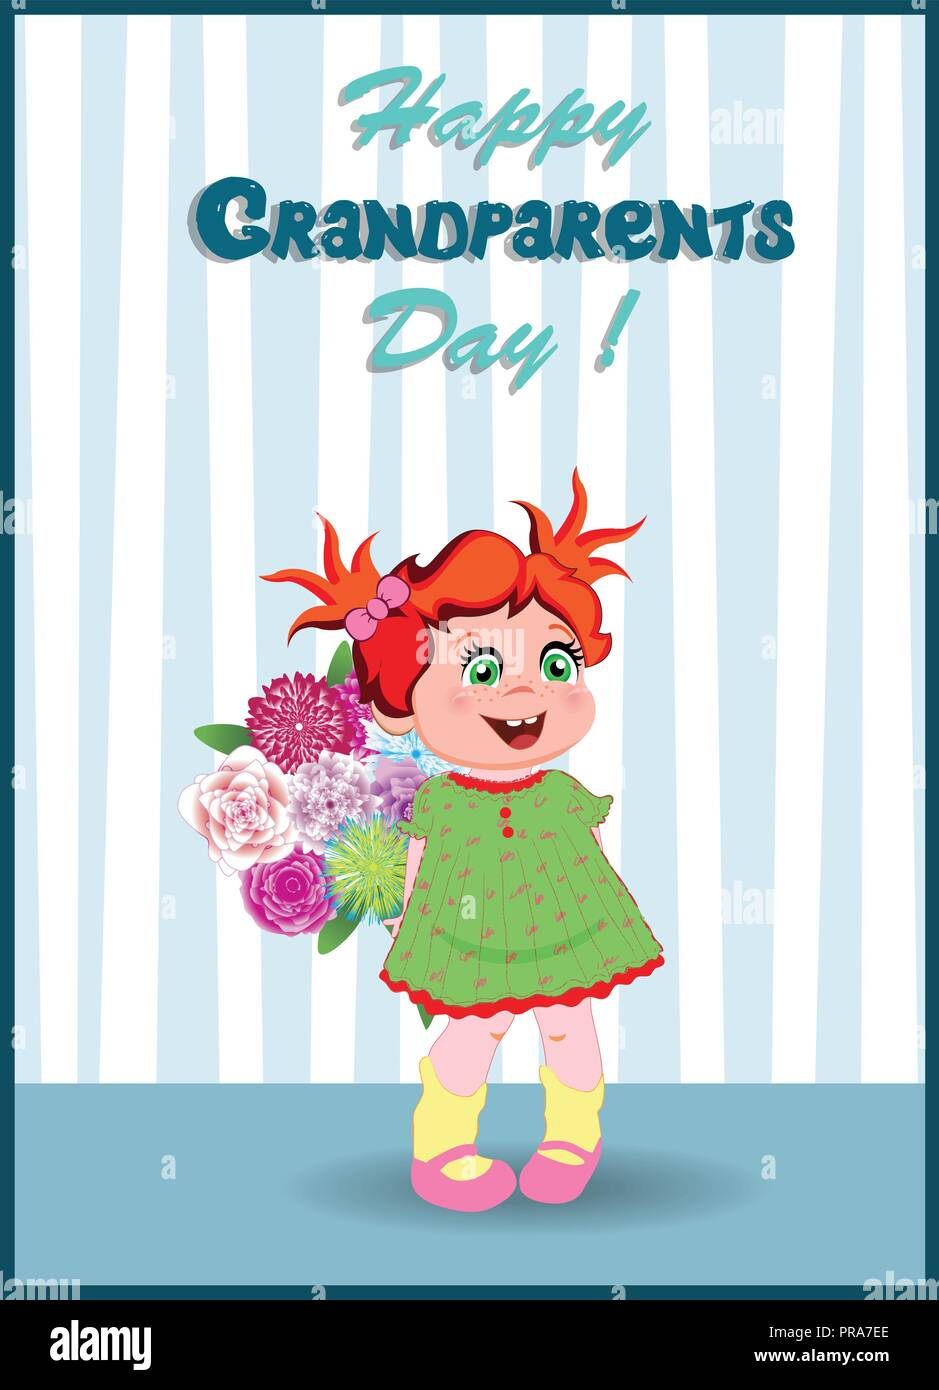 Grandparents day greeting card with cute cartoon little grandchild grandparents day greeting card with cute cartoon little grandchild girl with beautiful bouquet of flowers on striped wallpaper background vector illu izmirmasajfo